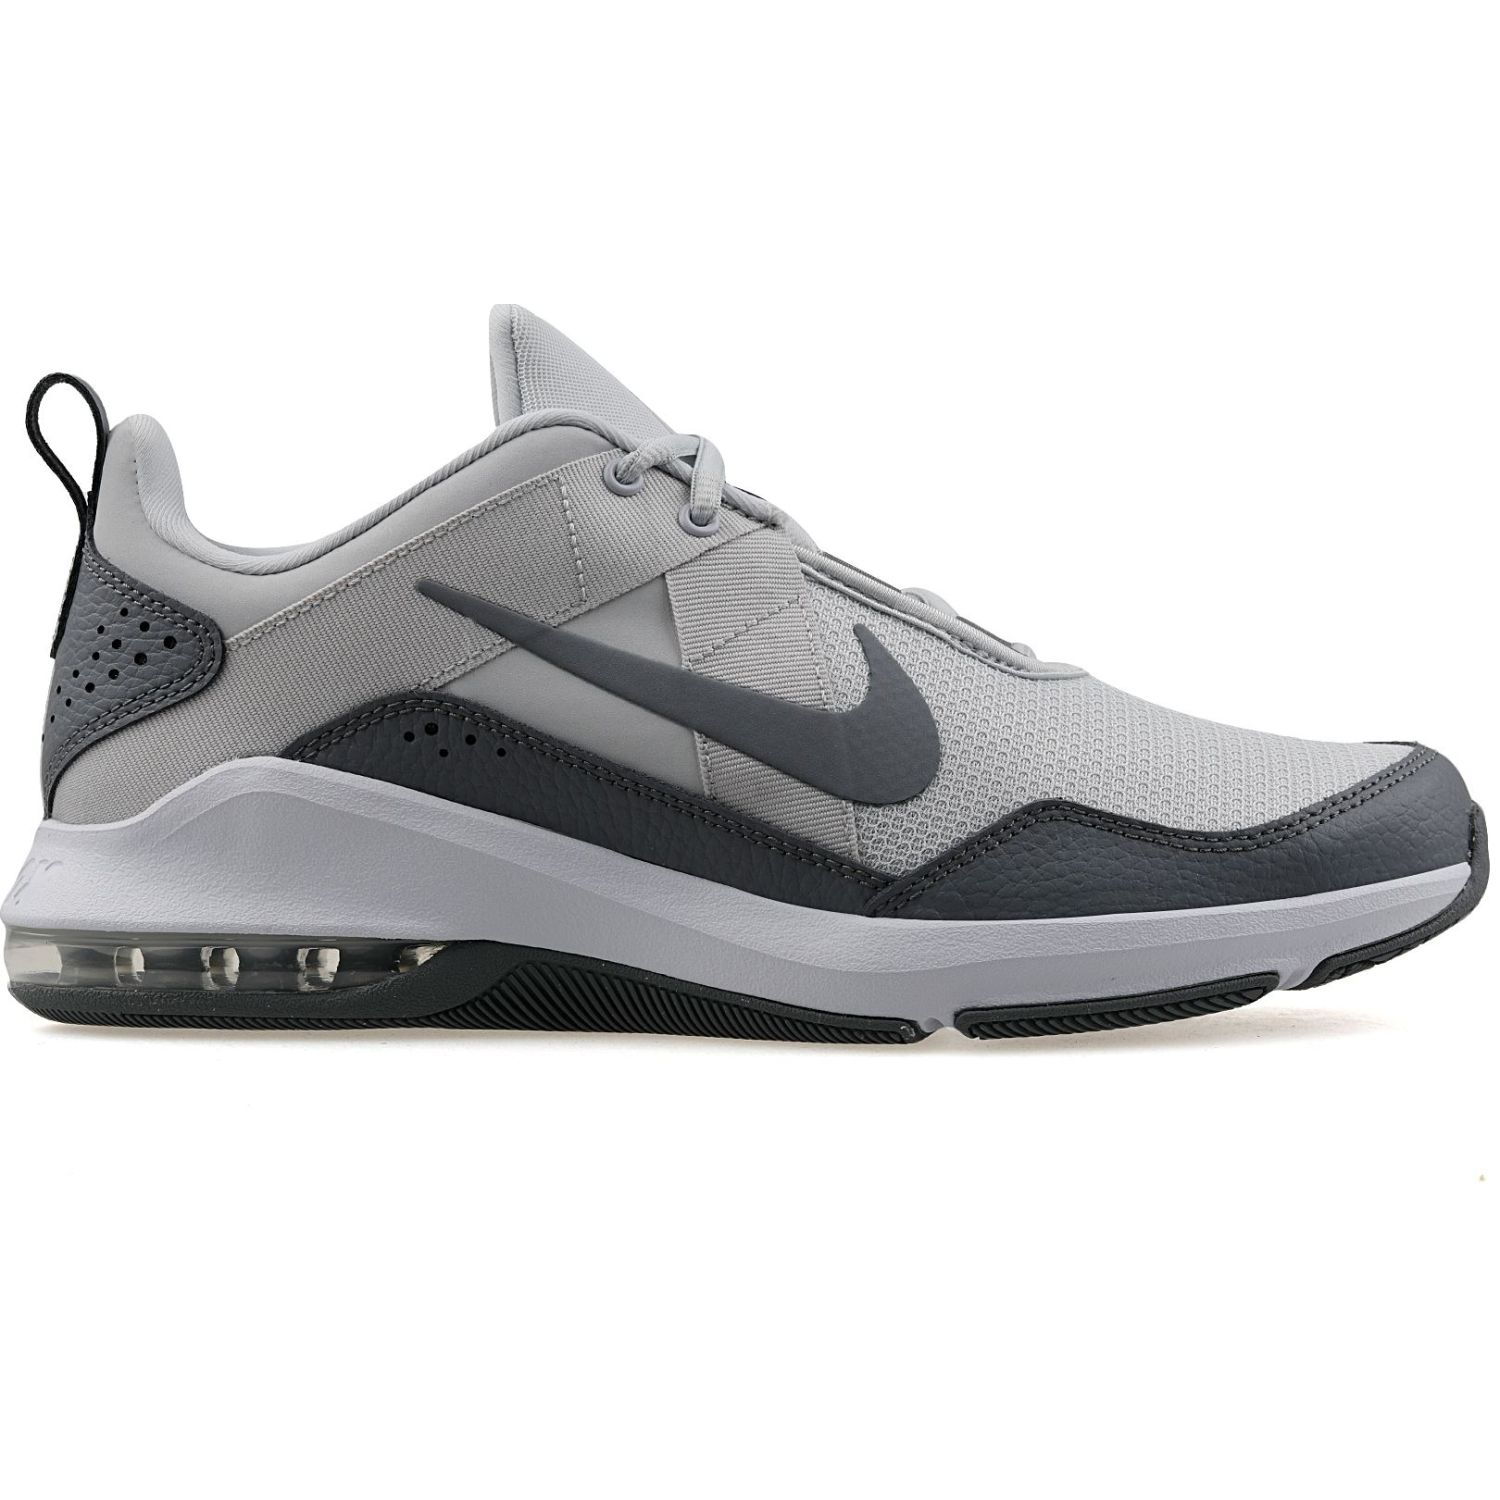 Nike nike air max alpha trainer 2 Gris Hombres